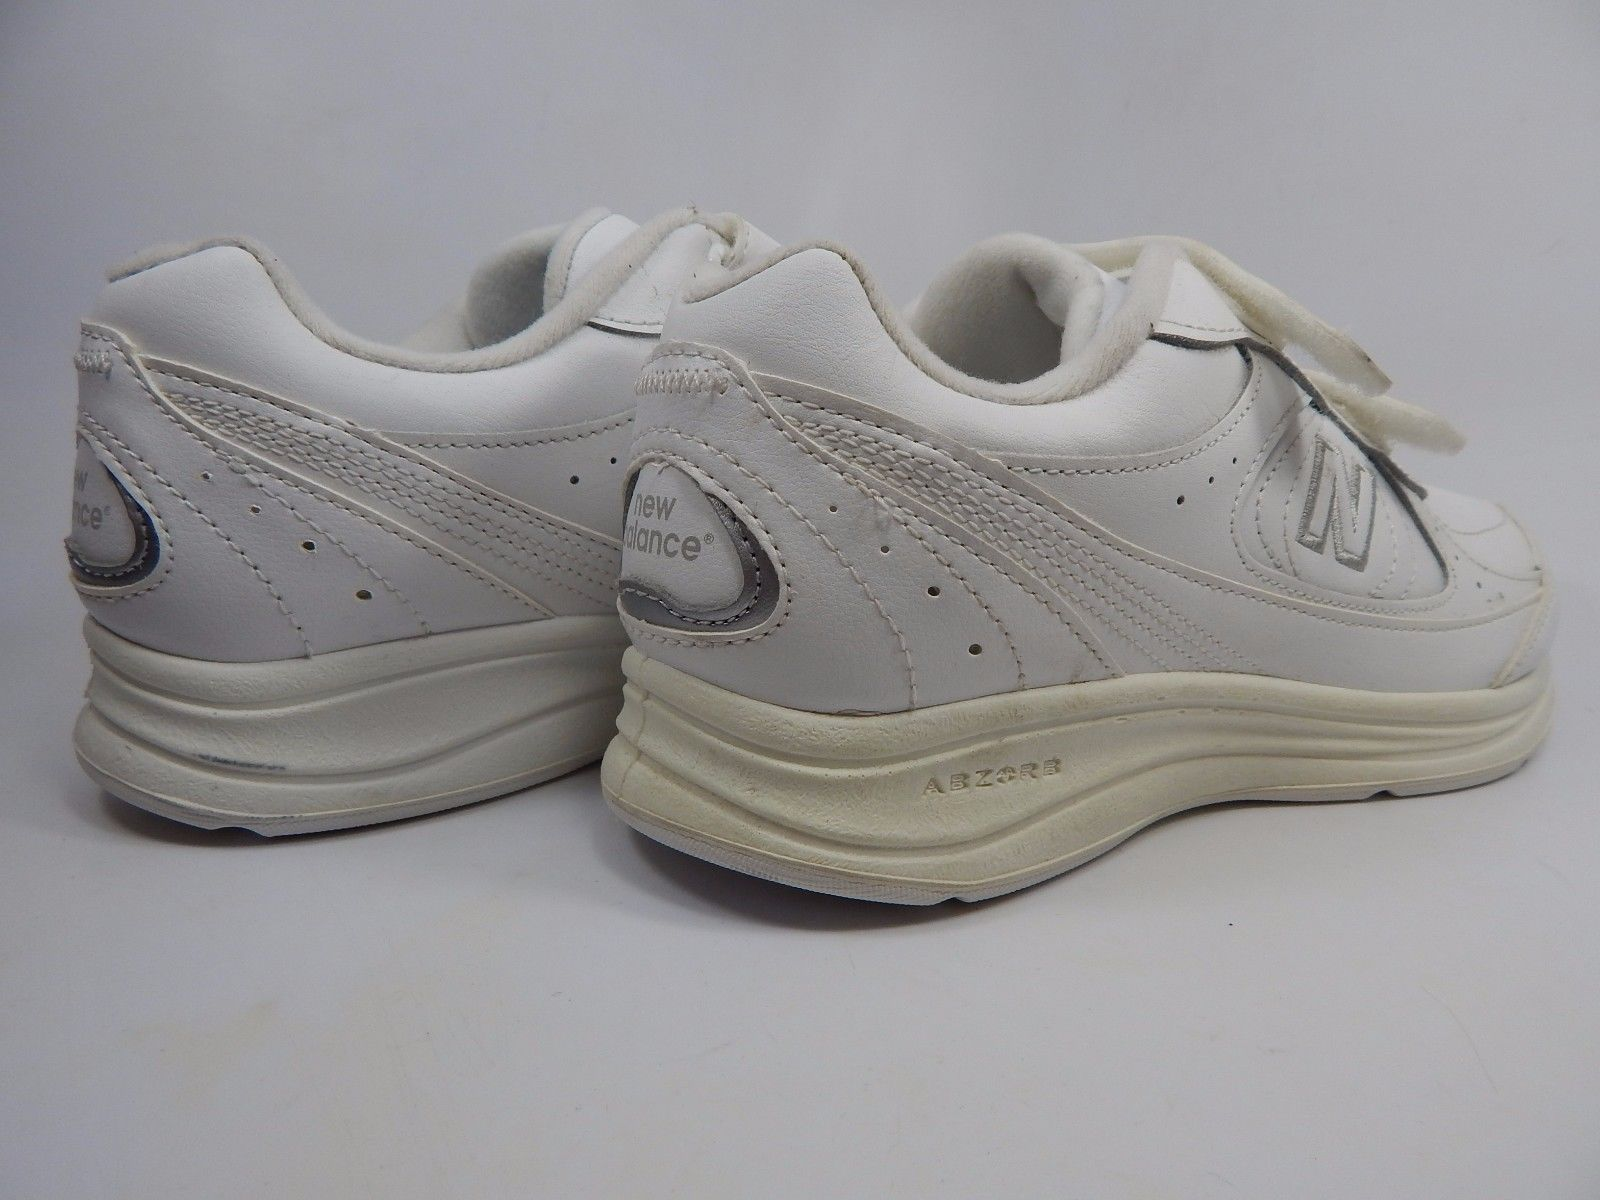 New Balance 577 Women's Walking Shoes Sz US 7 D WIDE EU 37.5 White WW577VW